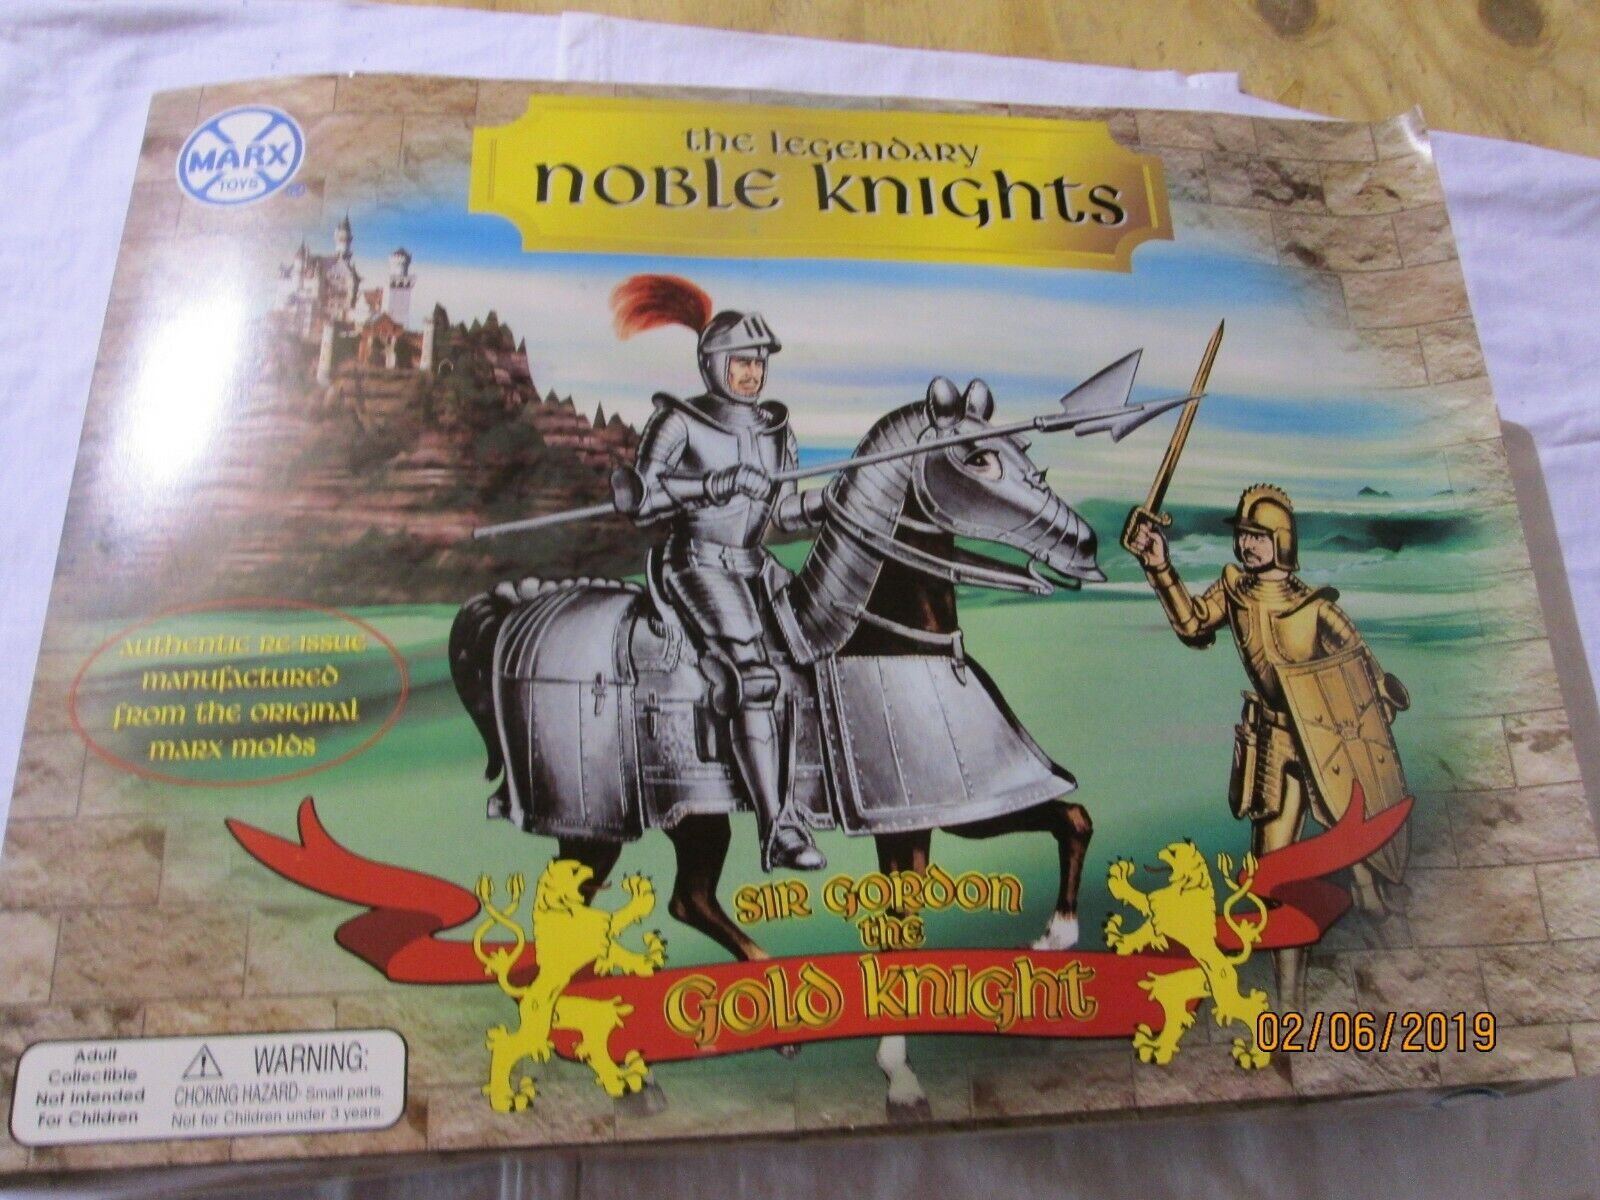 MARX REISSUE THE LEGENDARY NOBLE KNIGHTS SIR GORDON THE gold KNIGHT